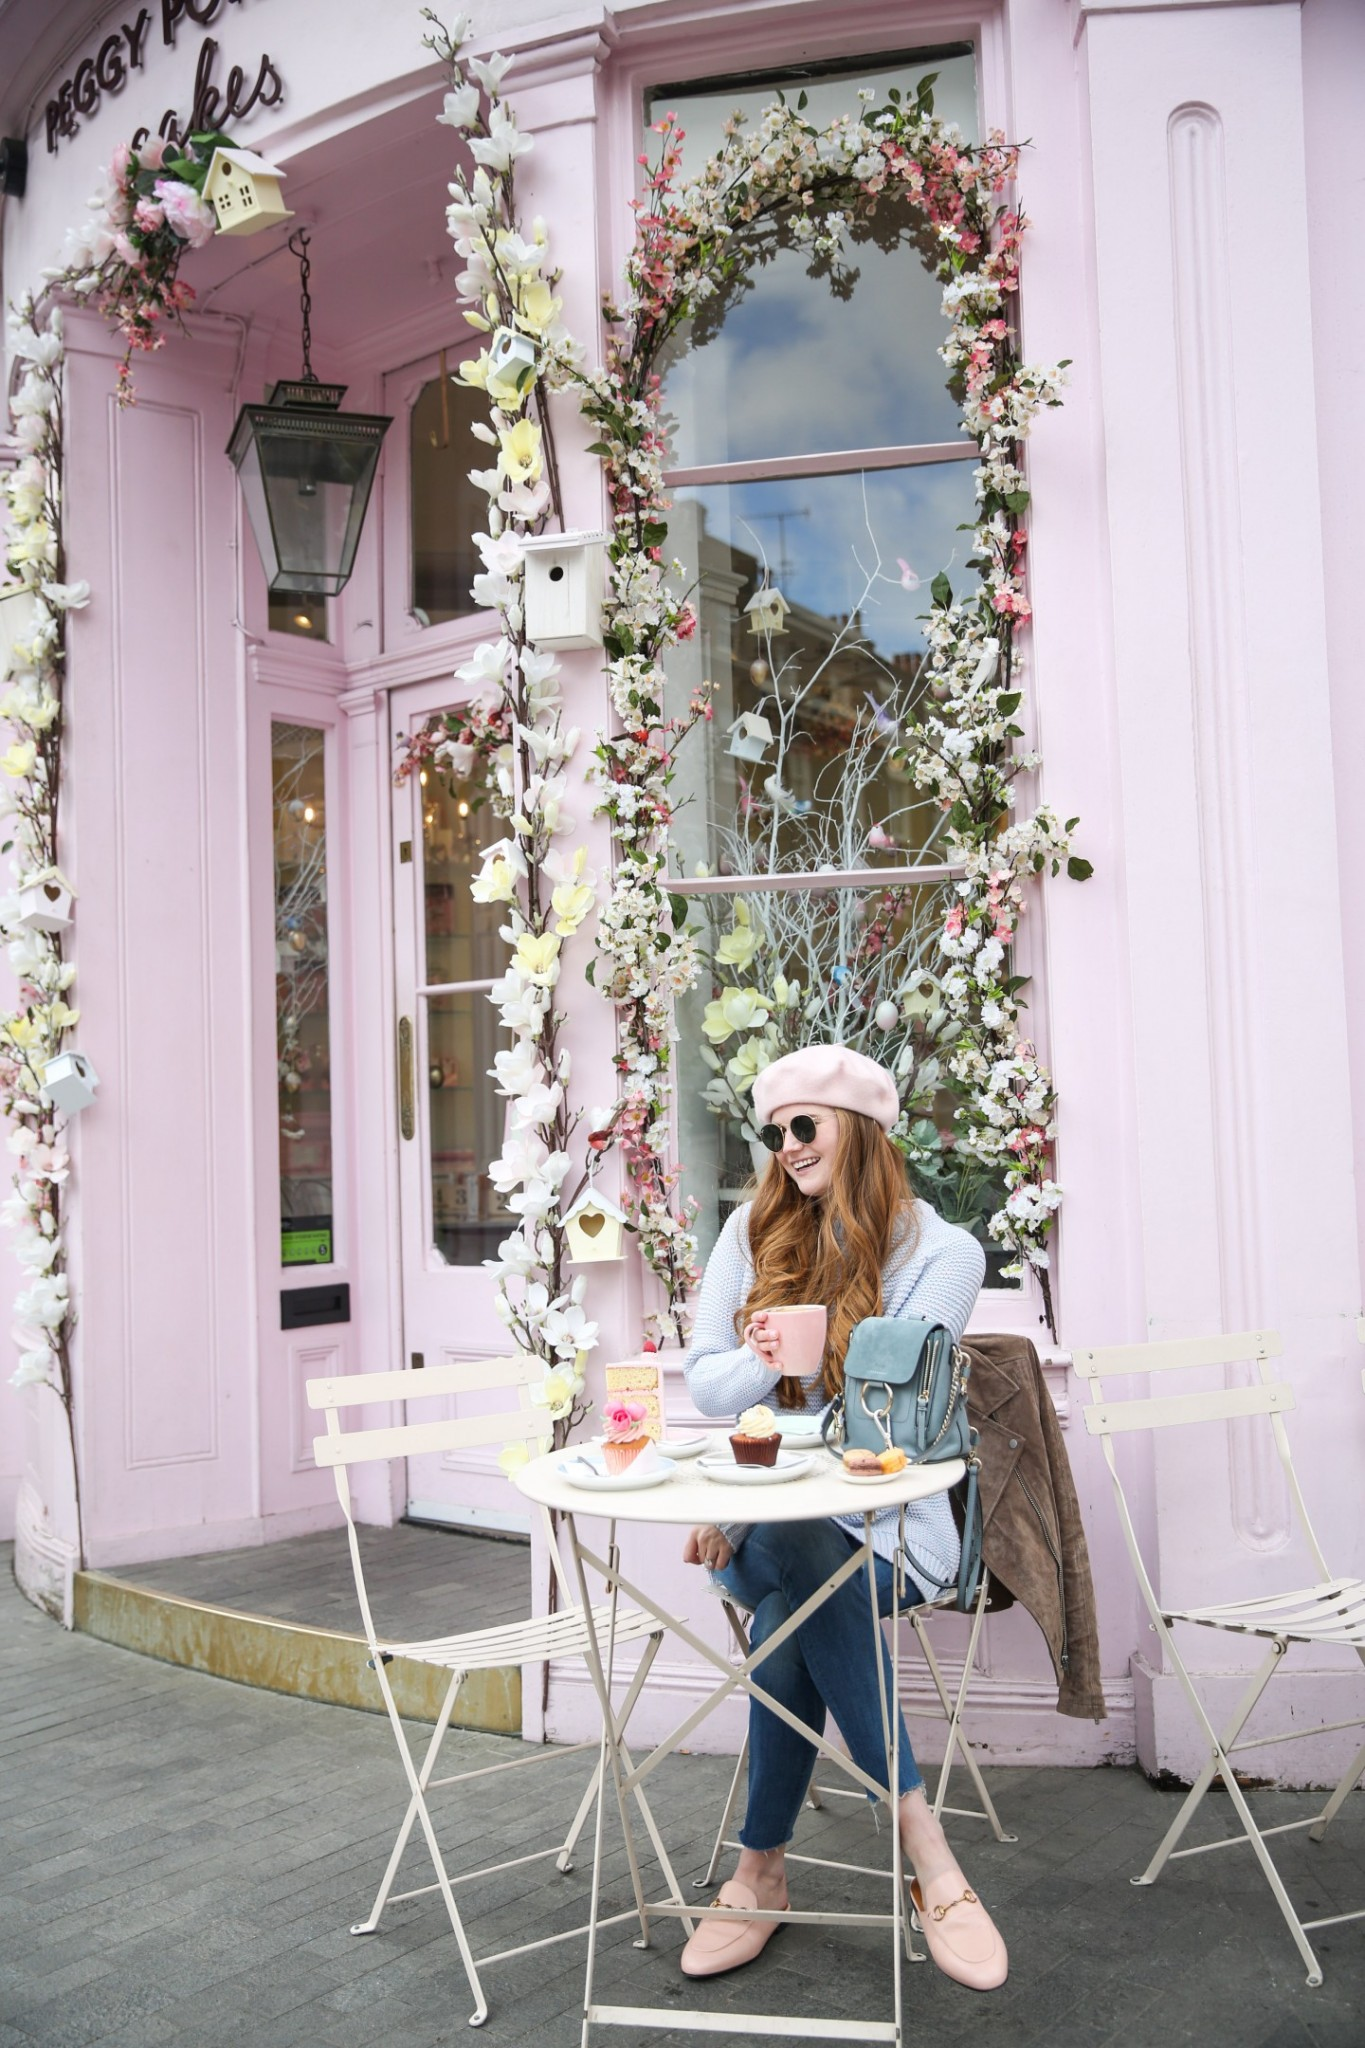 Lifestyle blogger Mollie Moore shares the top 5 most Instagram-worthy cafes in London